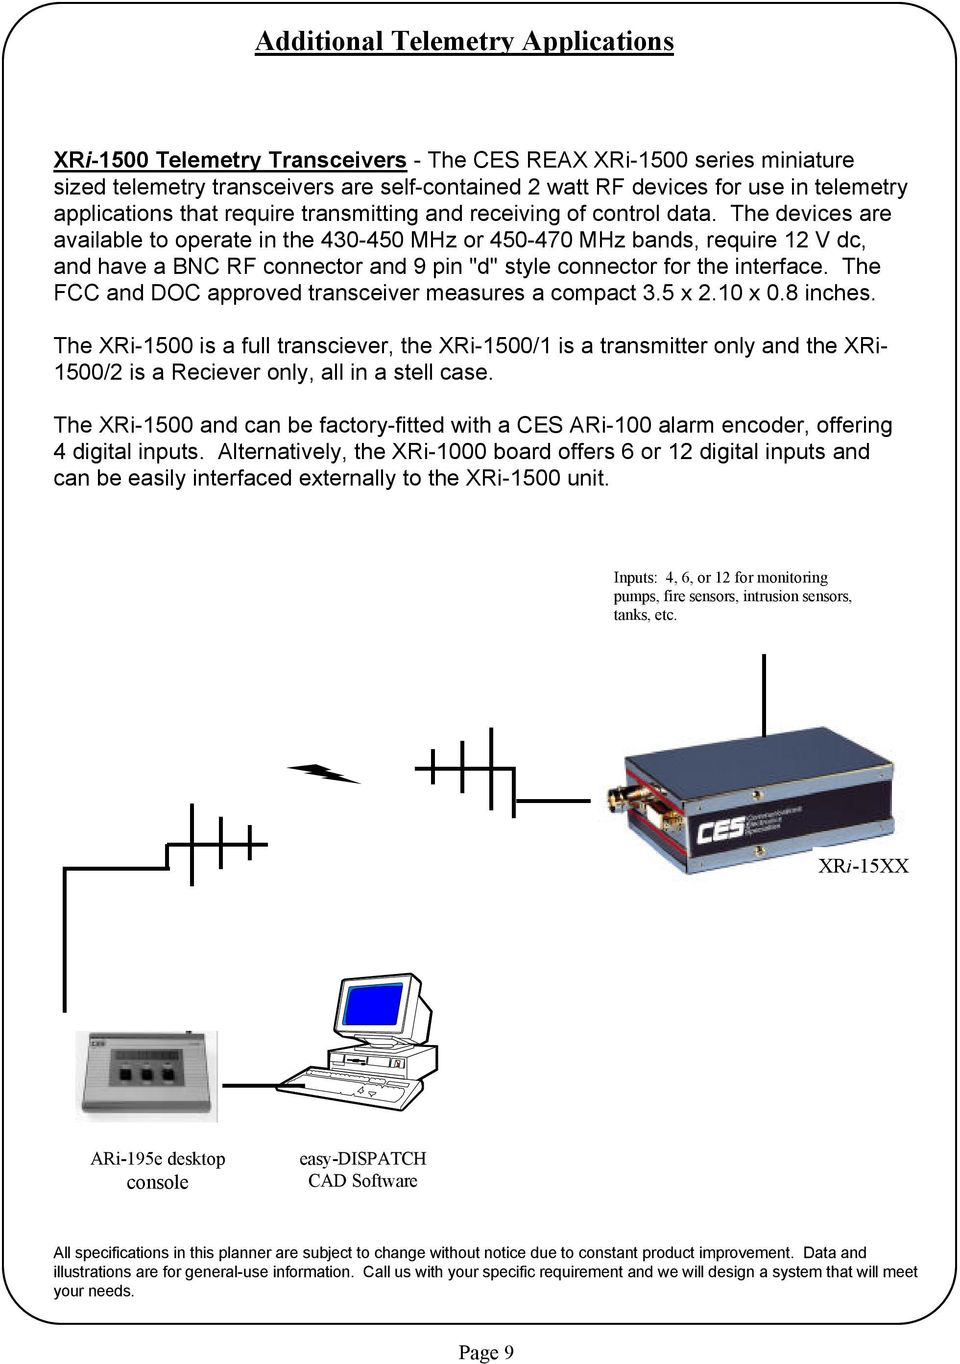 "The devices are available to operate in the 430-450 MHz or 450-470 MHz bands, require 12 V dc, and have a BNC RF connector and 9 pin ""d"" style connector for the interface."